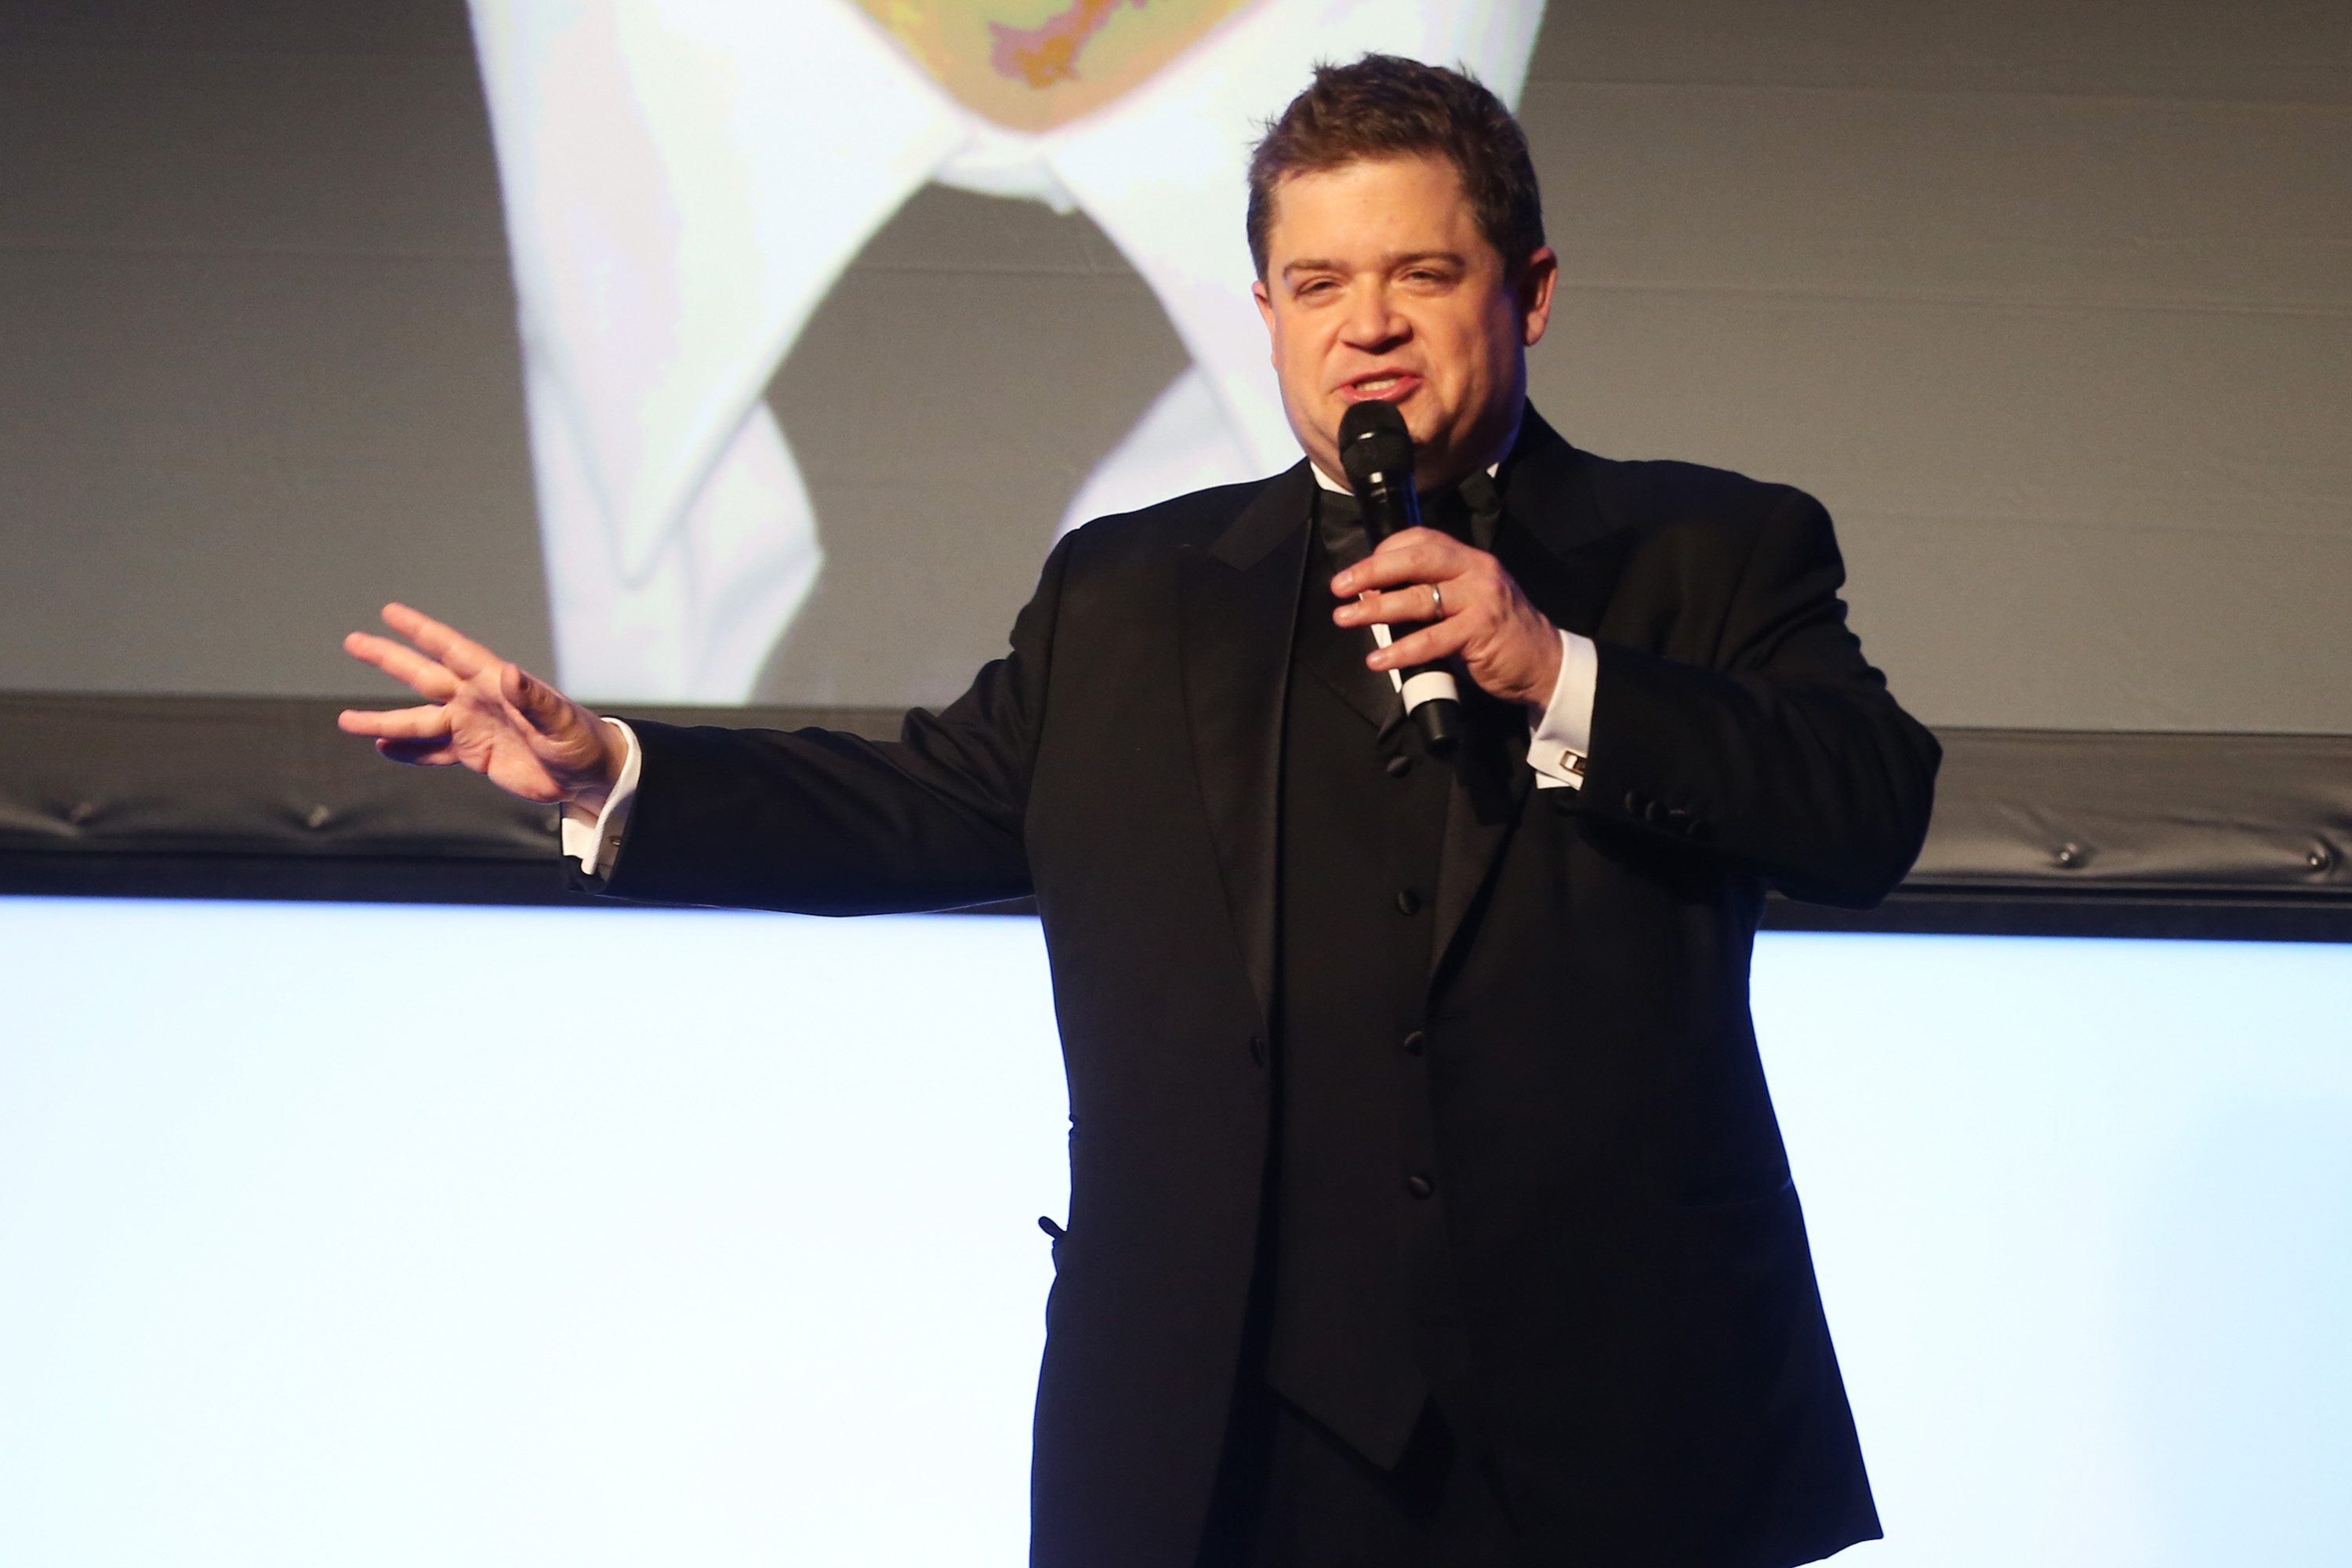 Image: Patton Oswalt speaks onstage during the 26th American Cinematheque Award Honoring Ben Stiller - Show